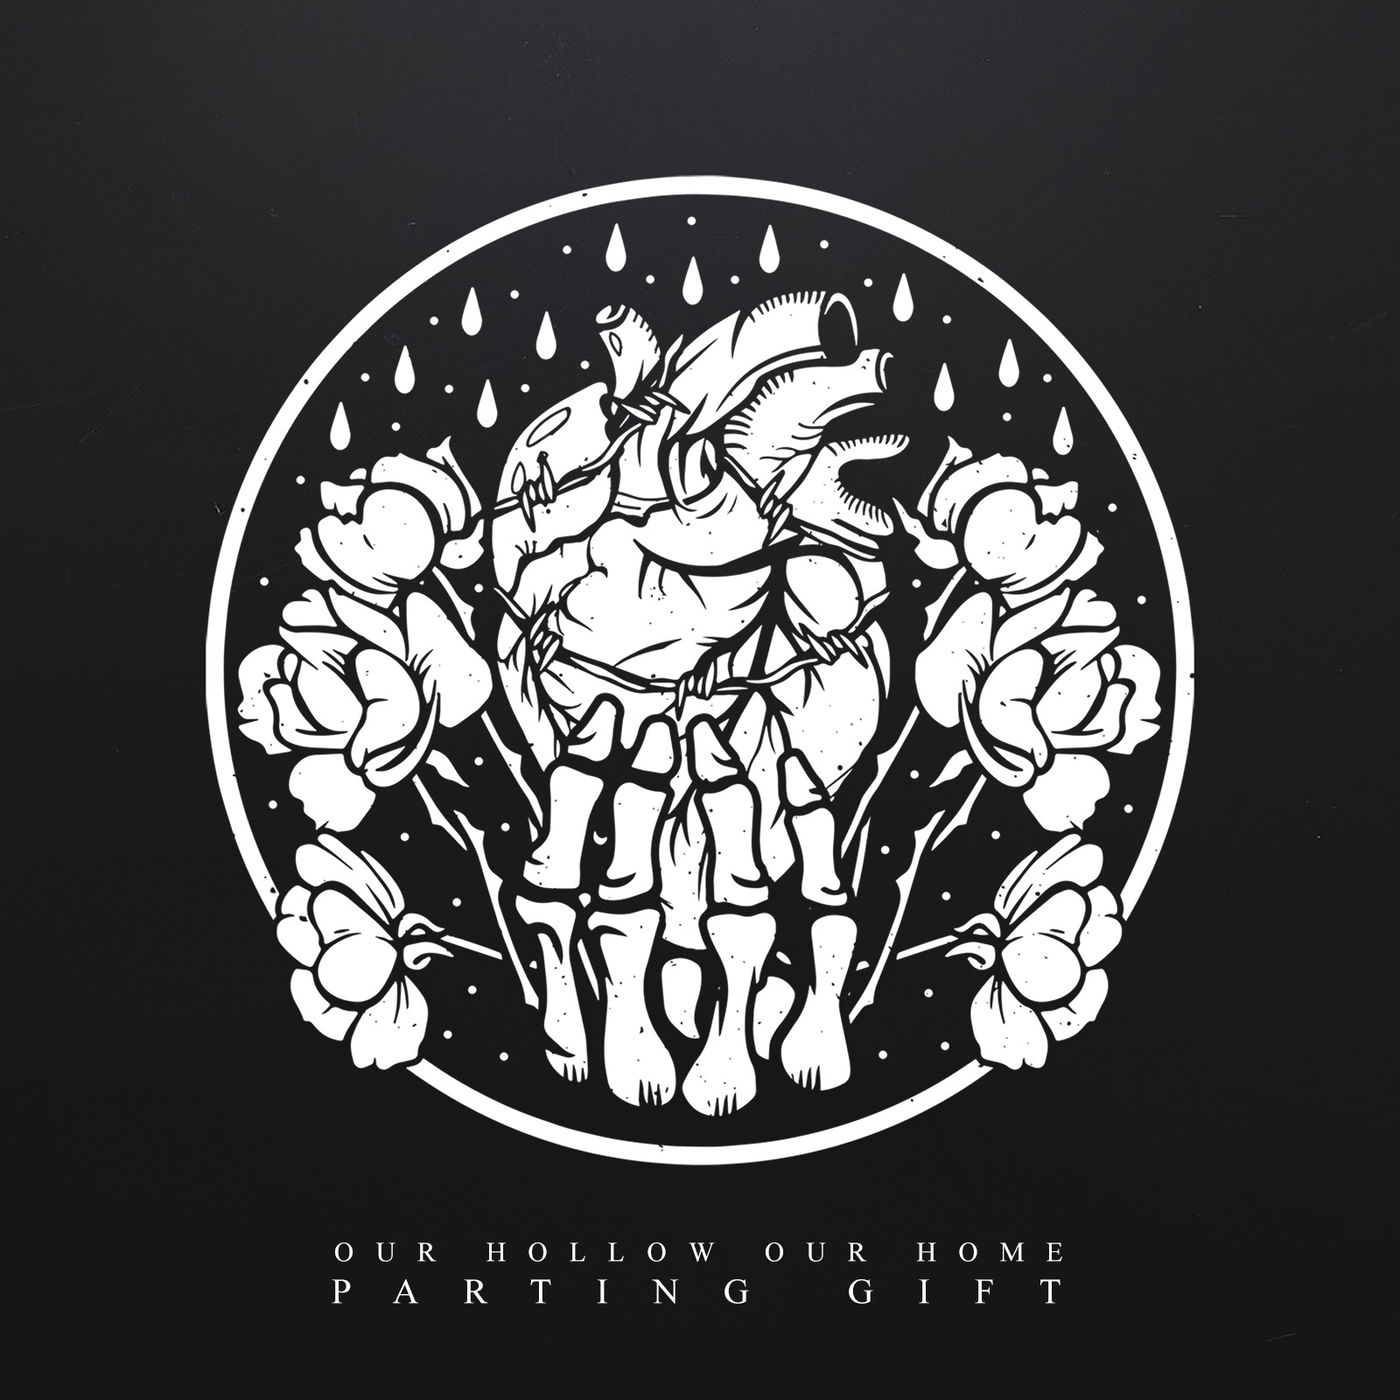 Our Hollow Our Home - Parting Gift [single] (2019)